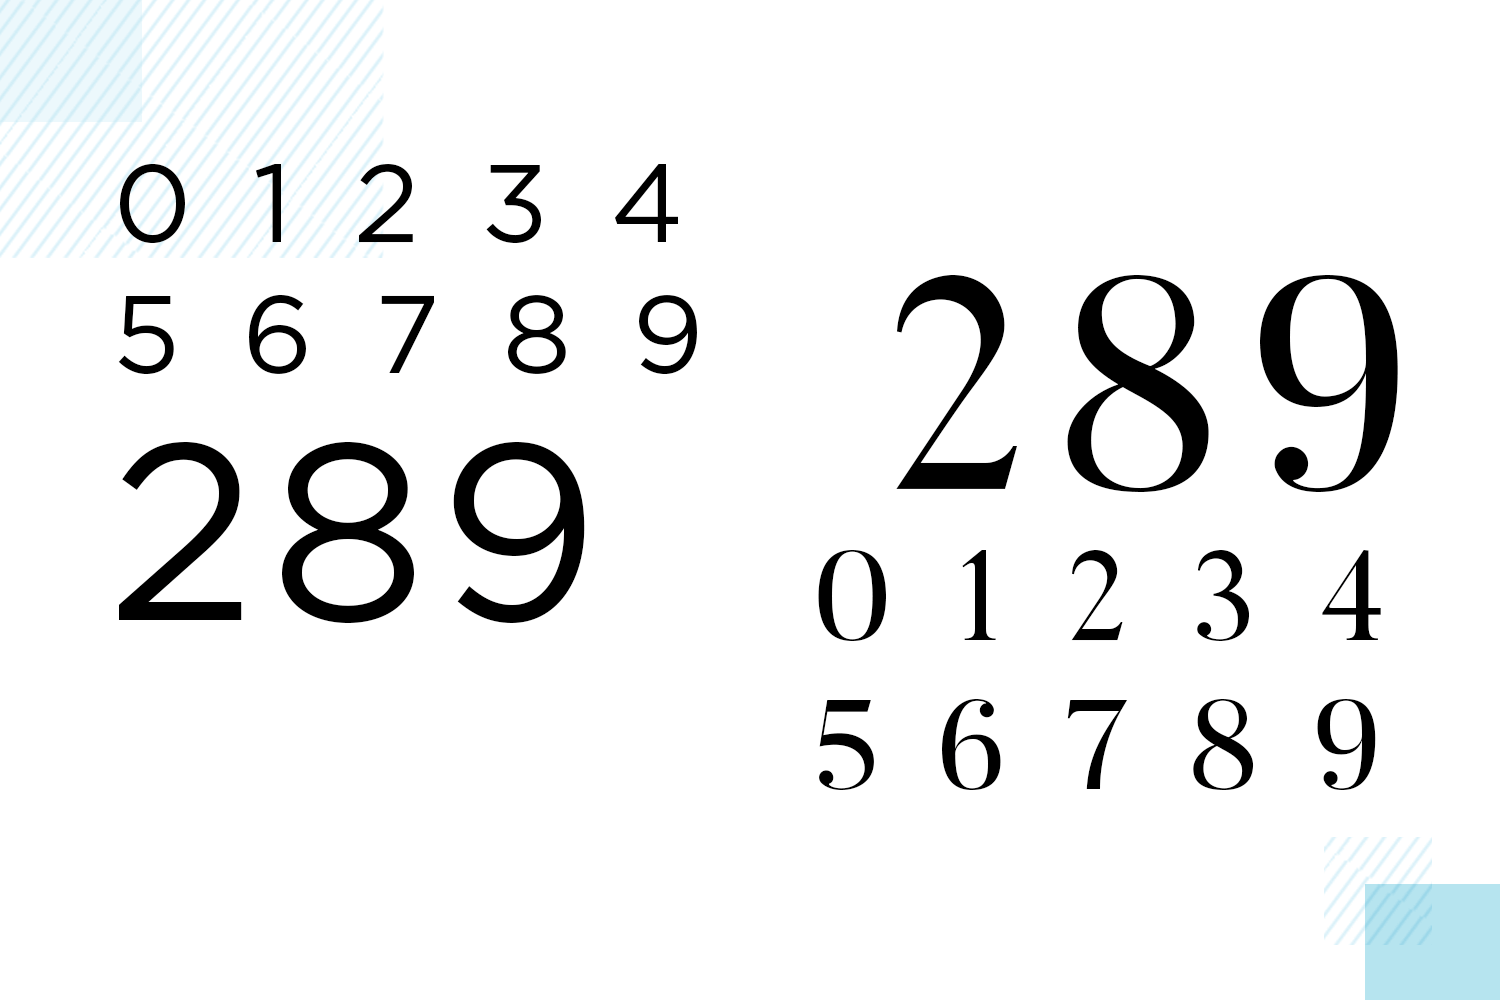 types of number fonts